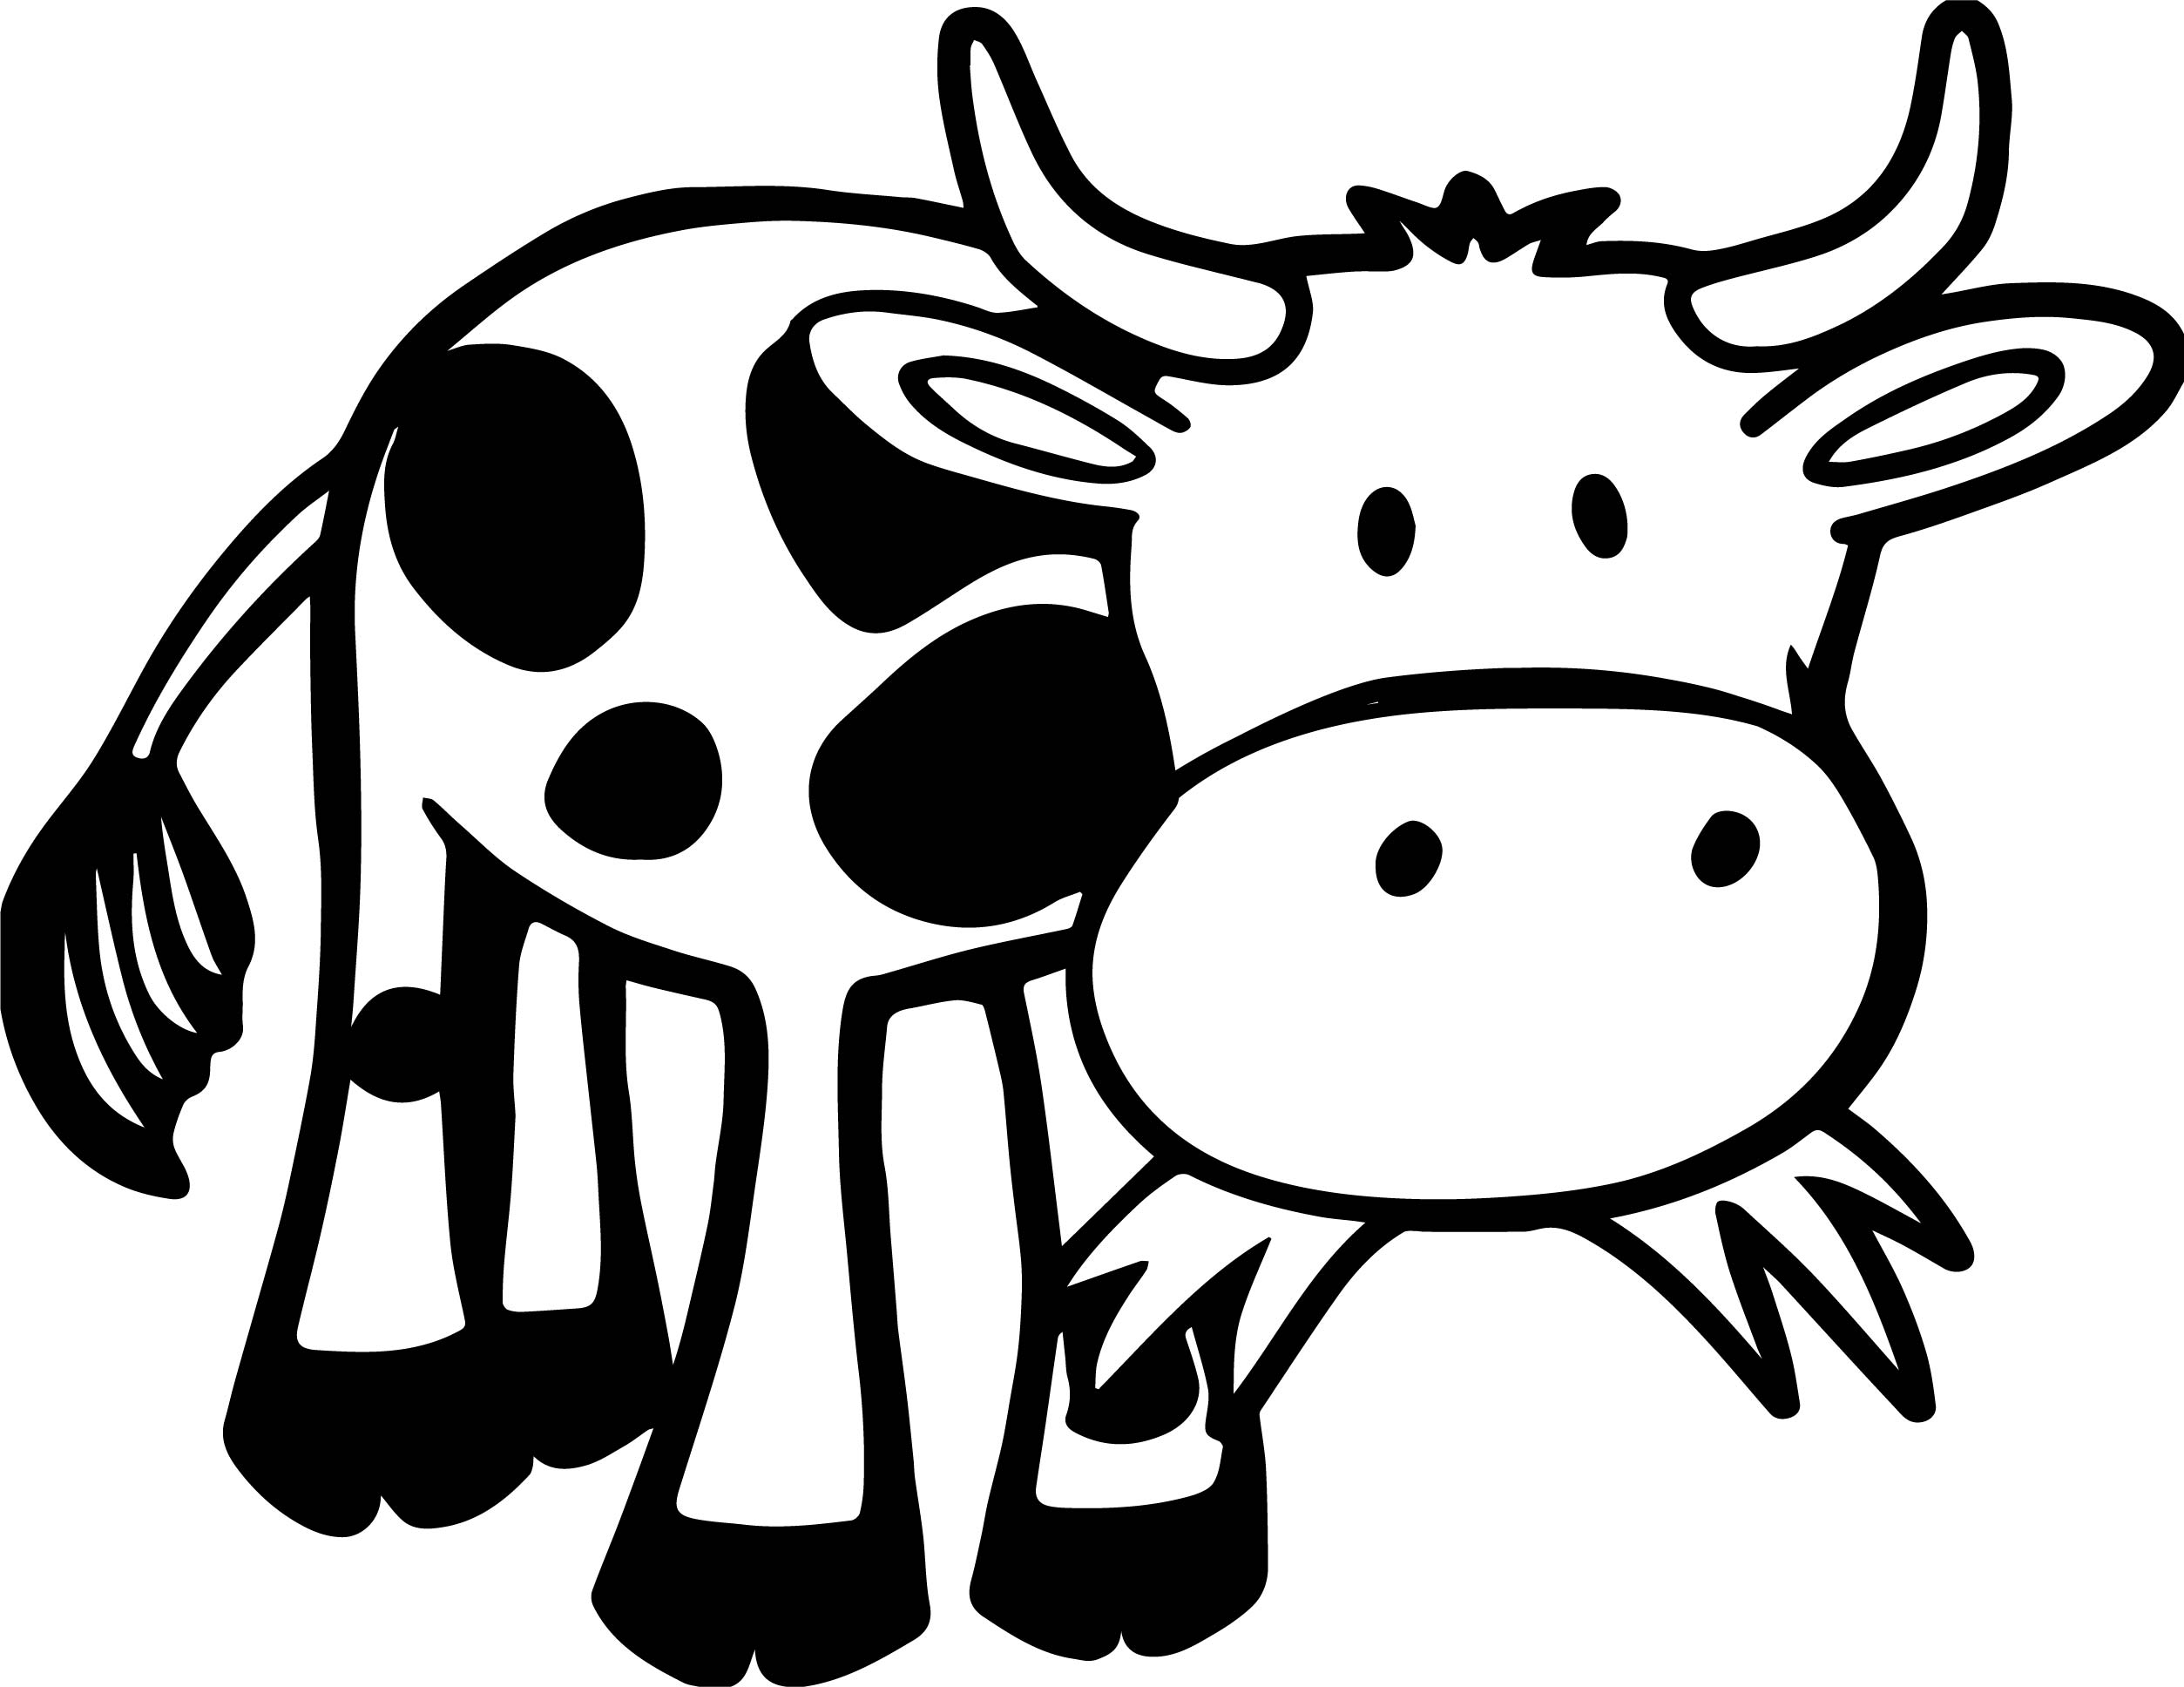 2507x1936 animal animal coloring pages for kids cow outline images poster